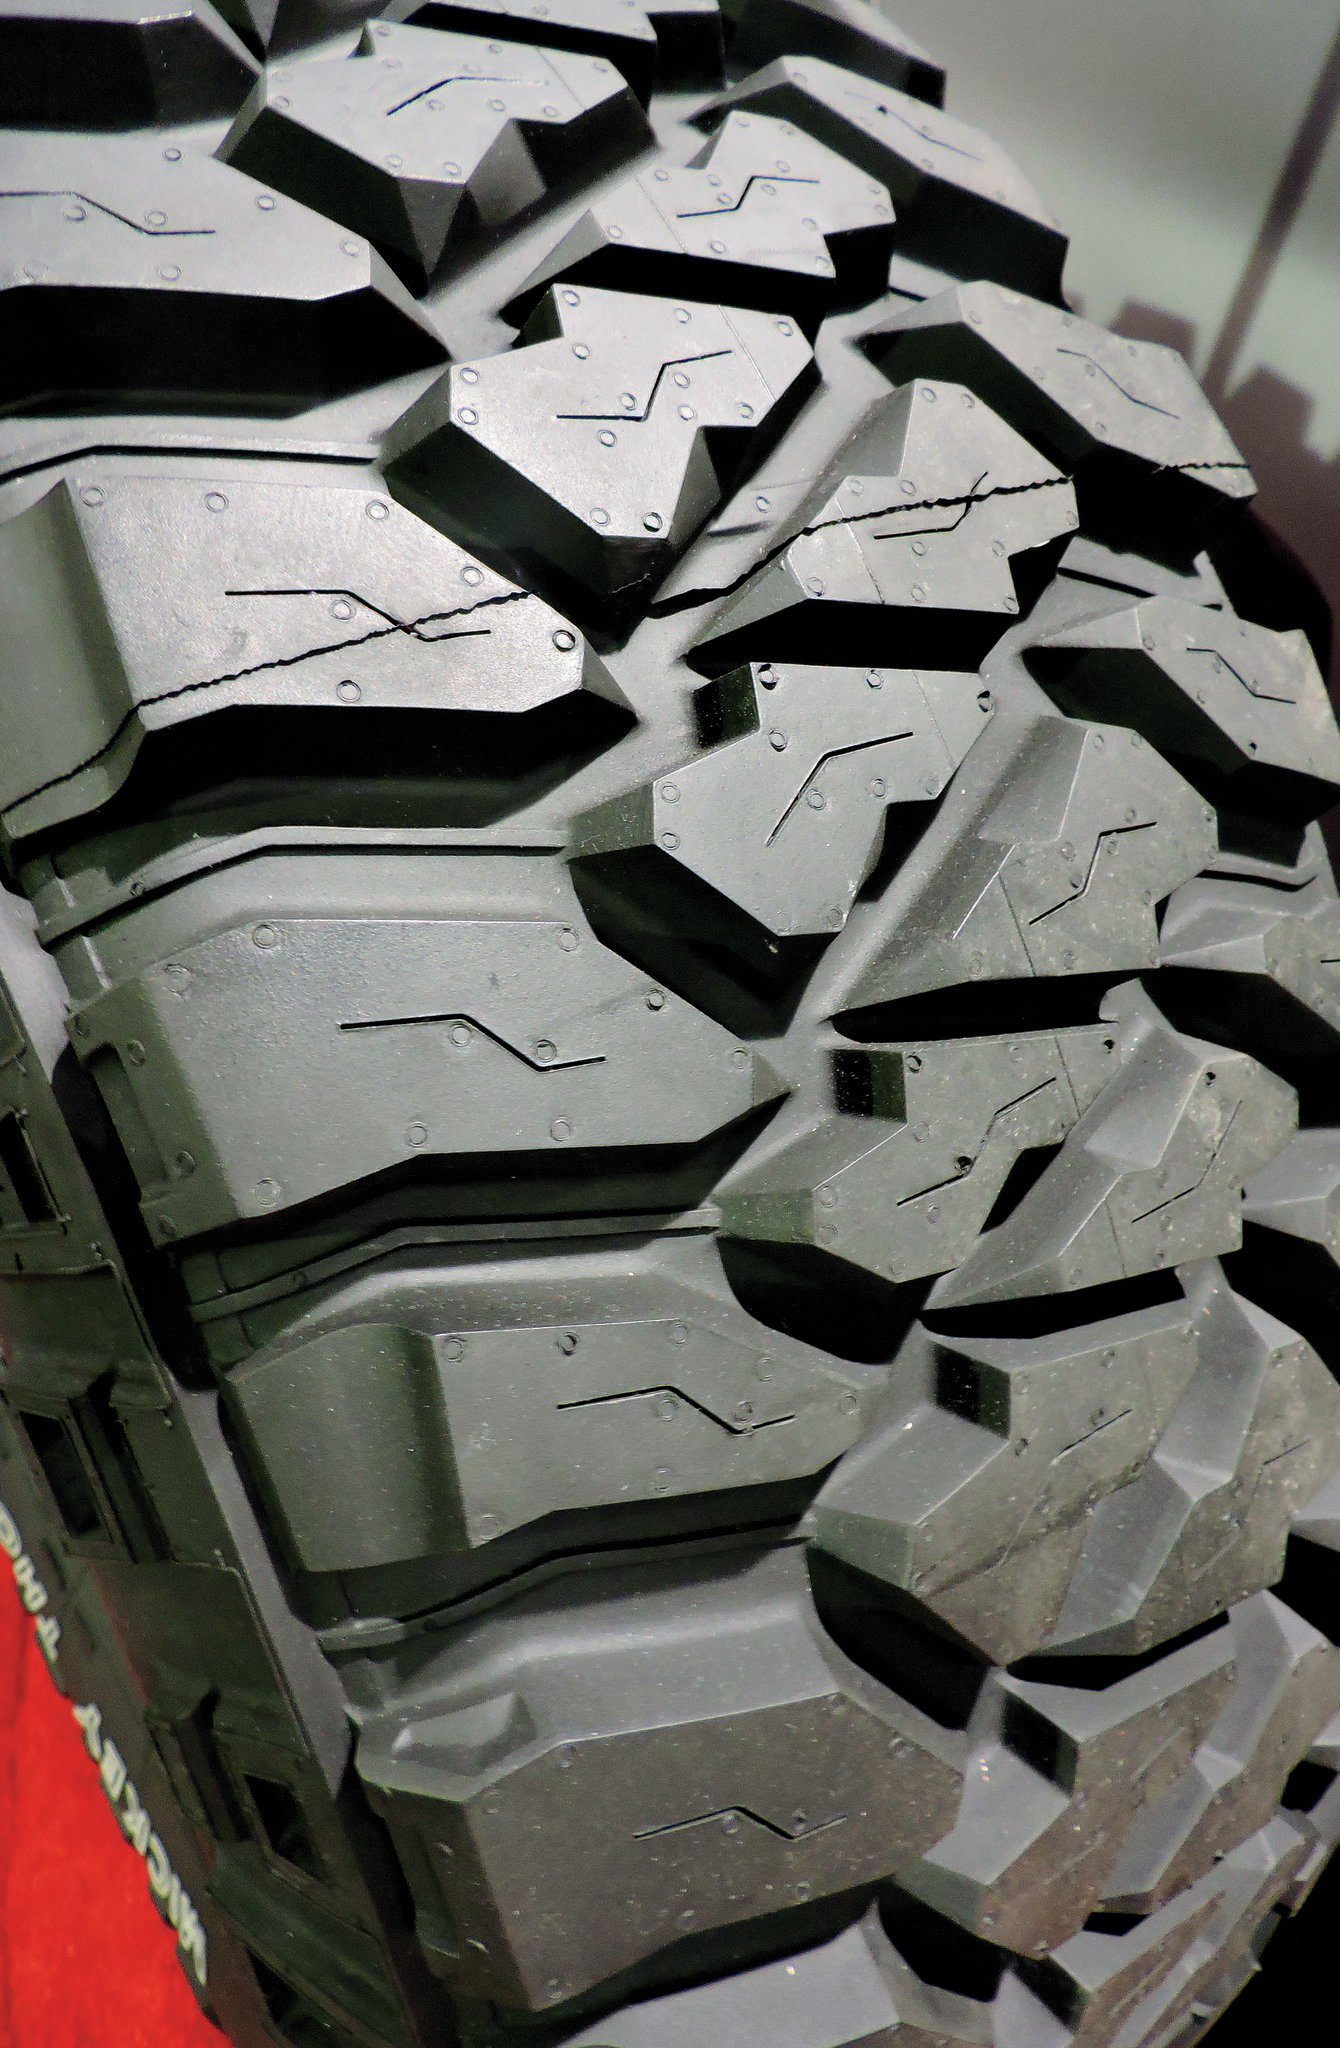 The new Mickey Baja MTZ P3 tread compound will be available by the time you read this. The new tire is almost identical to the original Baja MTZ, with the big difference being the new silica-reinforced tread compound. The high-tech compound is said to give a longer tire life and enhanced wet weather traction on pavement.